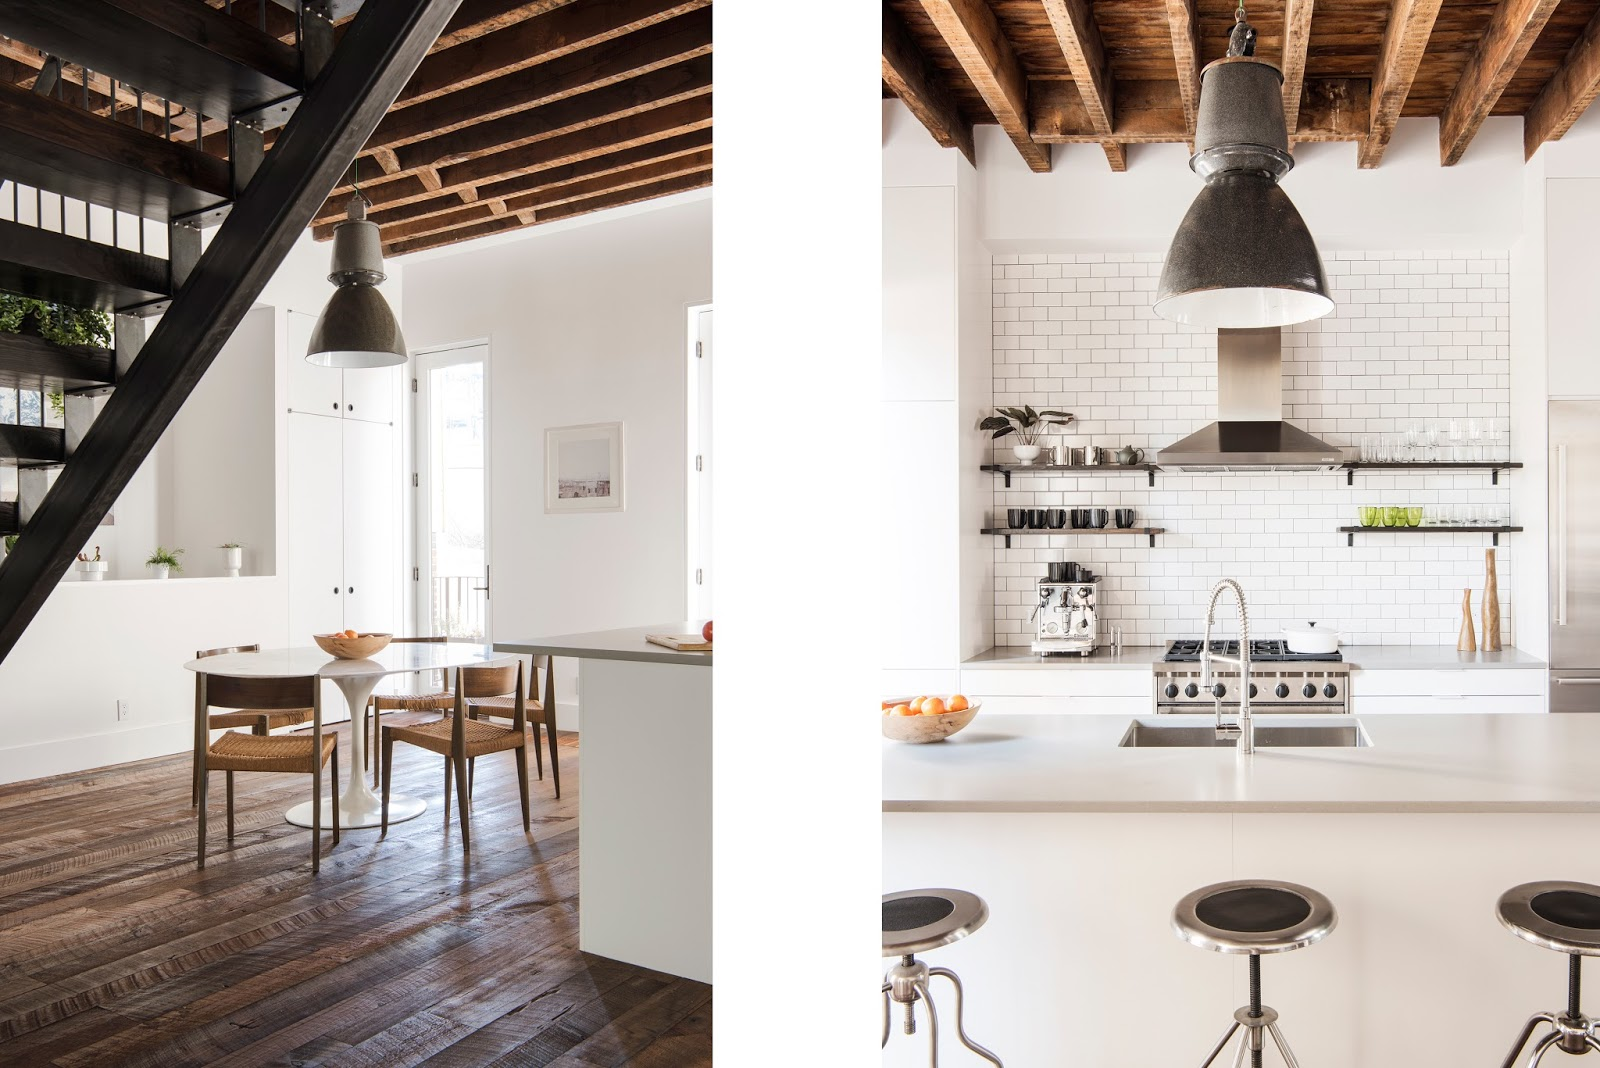 milo and mitzy duett design x green x loft tour i absolutely adore this loft like brooklyn family home designed by elizabeth roberts architecture and design an extensive renovation took place to expose